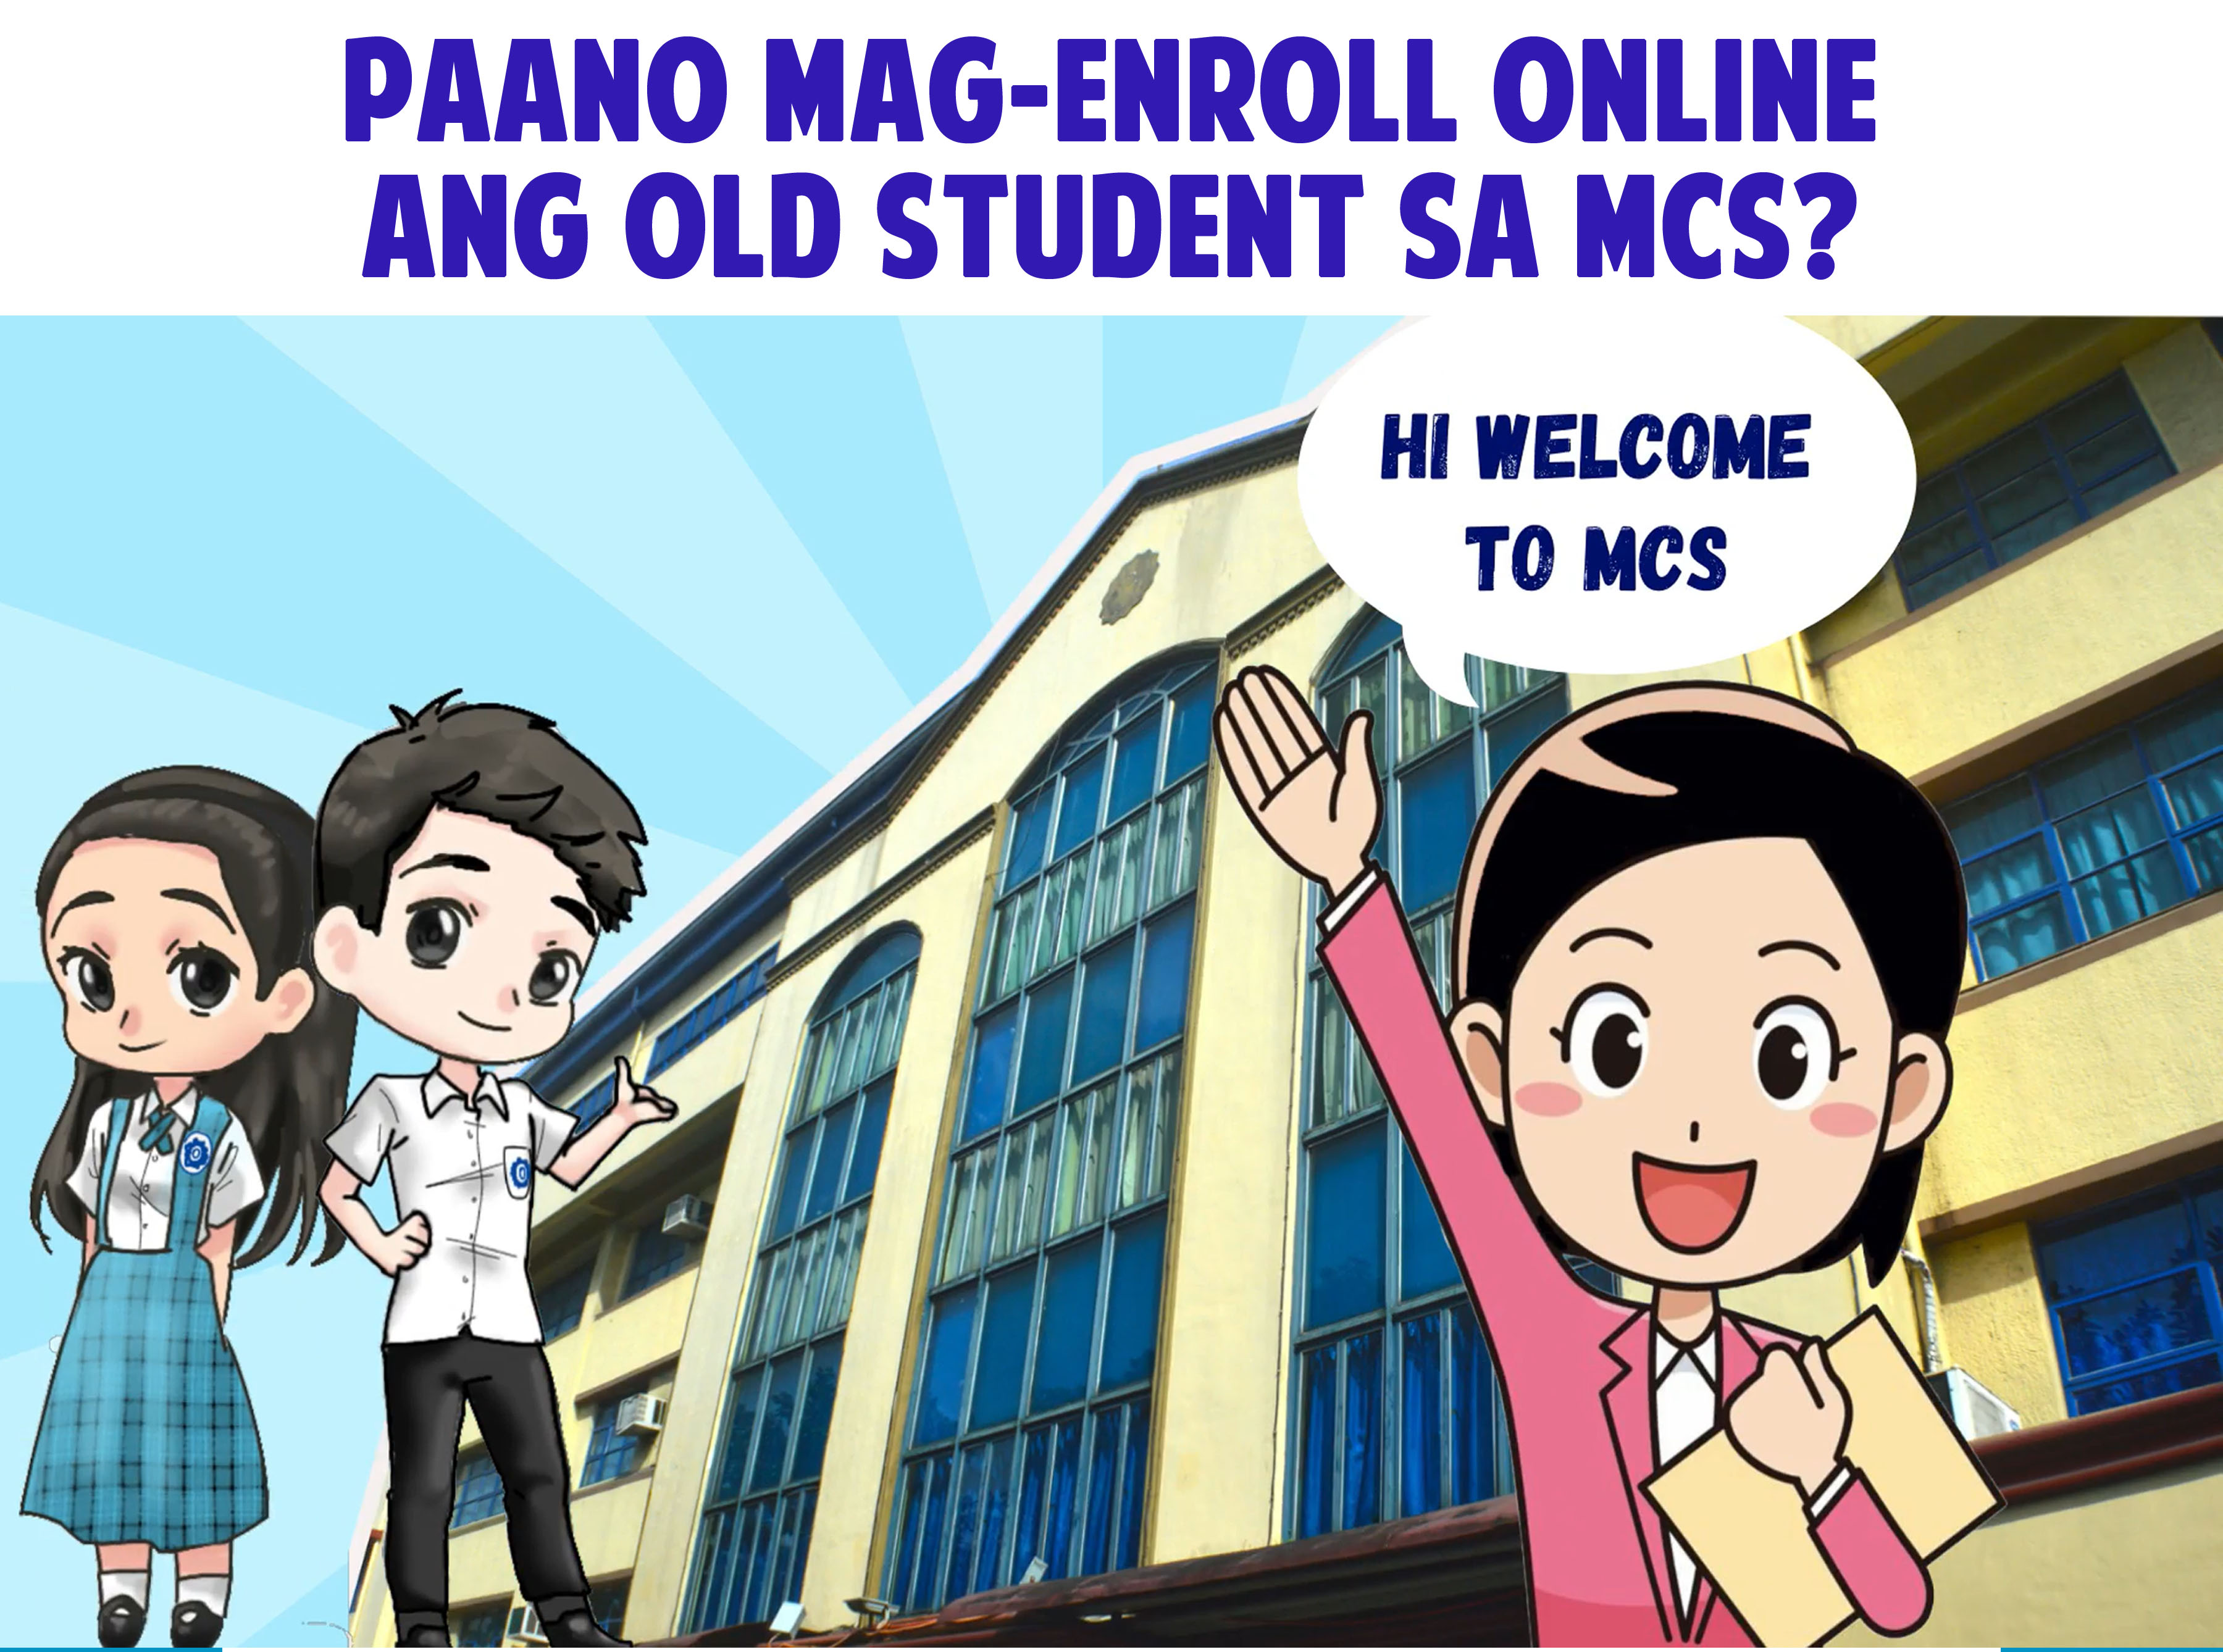 PAANO MAG-ENROLL ONLINE ANG OLD STUDENT SA MCS?. Kindly watch and follow the steps for ONLINE ENROLLMENT of OLD students.